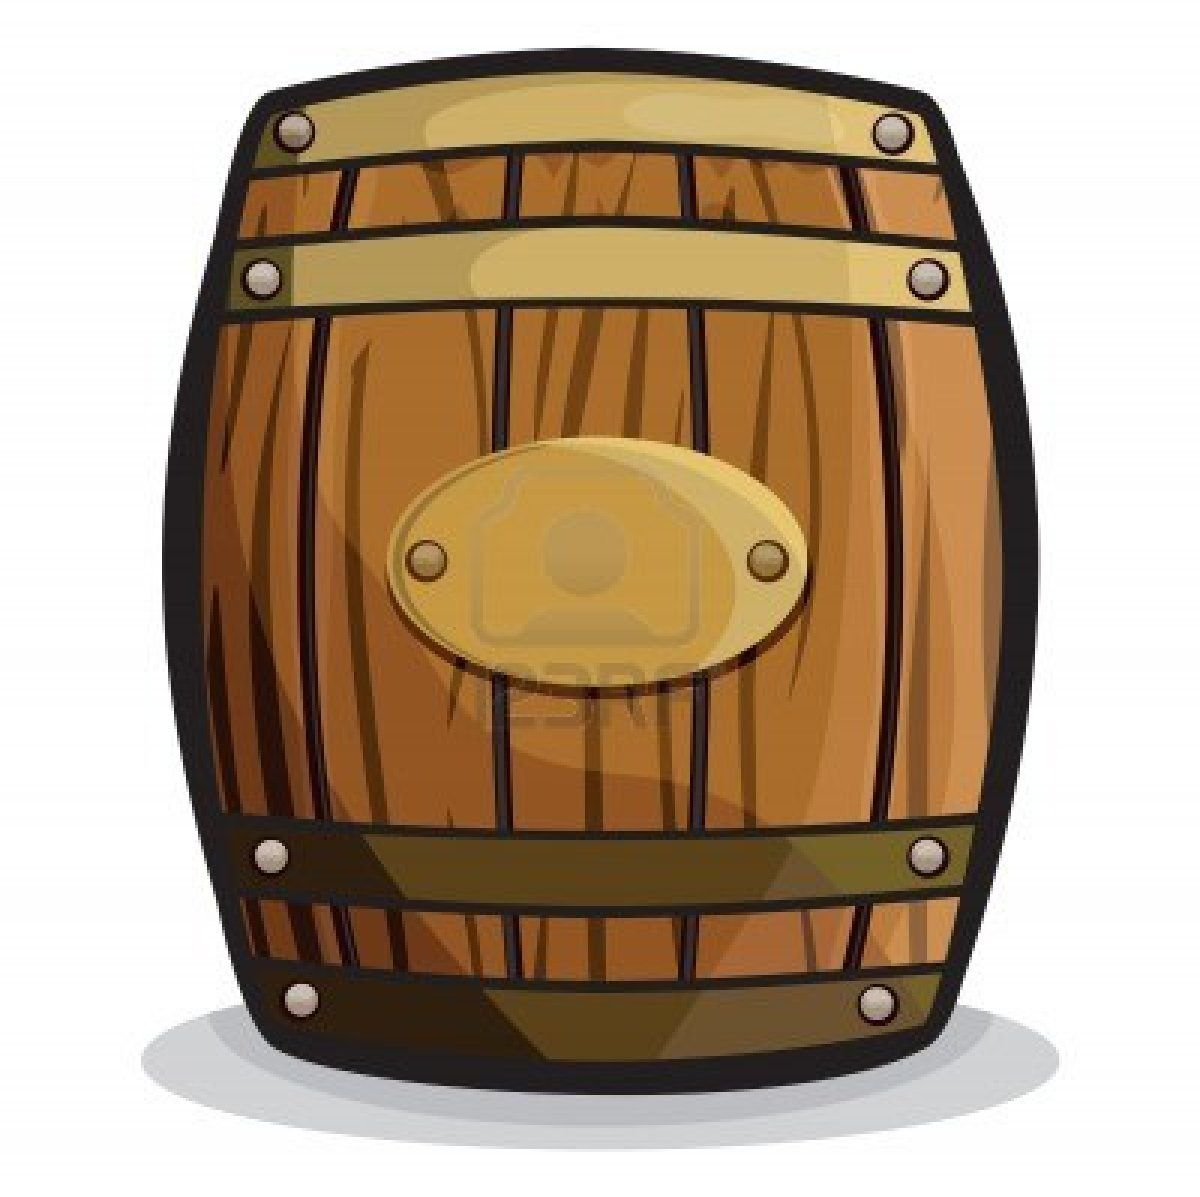 wooden barrel clip art - Google Search | Baby Rooms - FOR ...